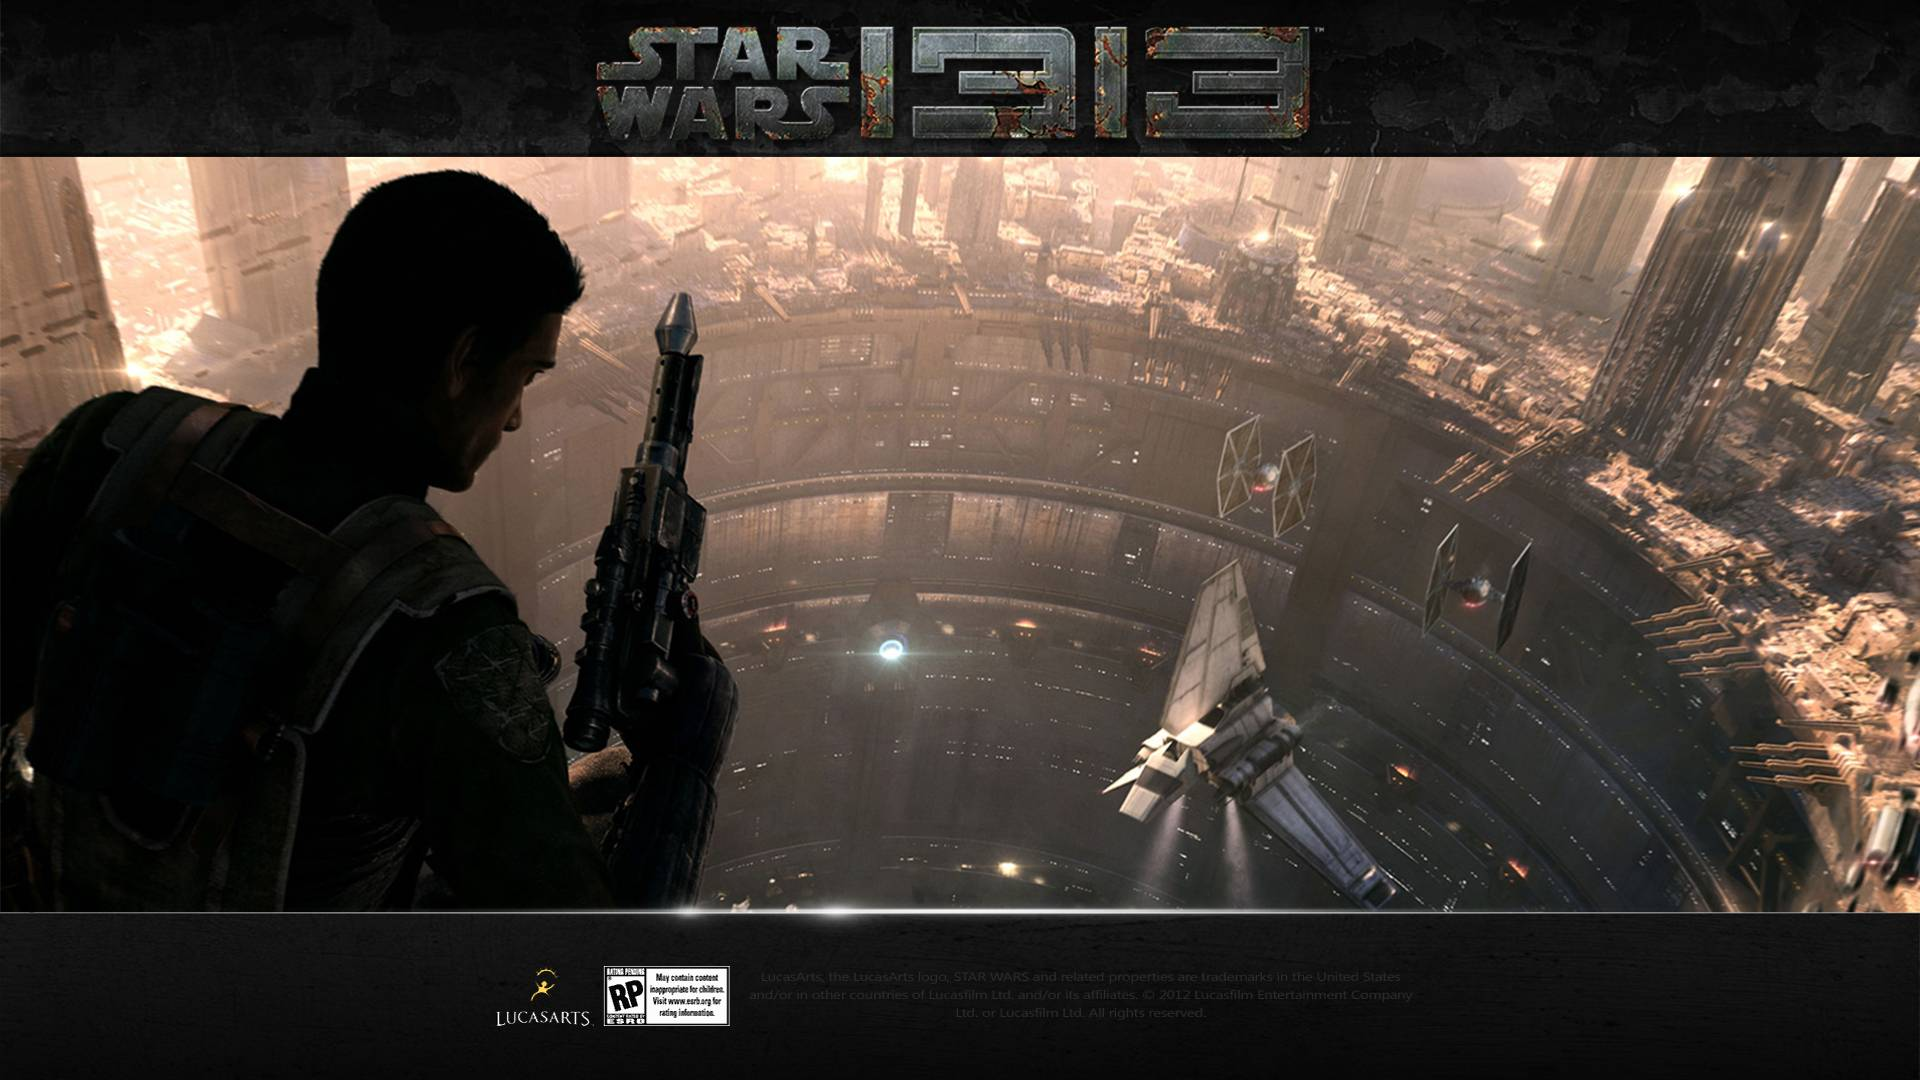 hd Wallpapers 1080p Stars Star Wars 1313 hd Wallpaper 1920x1080